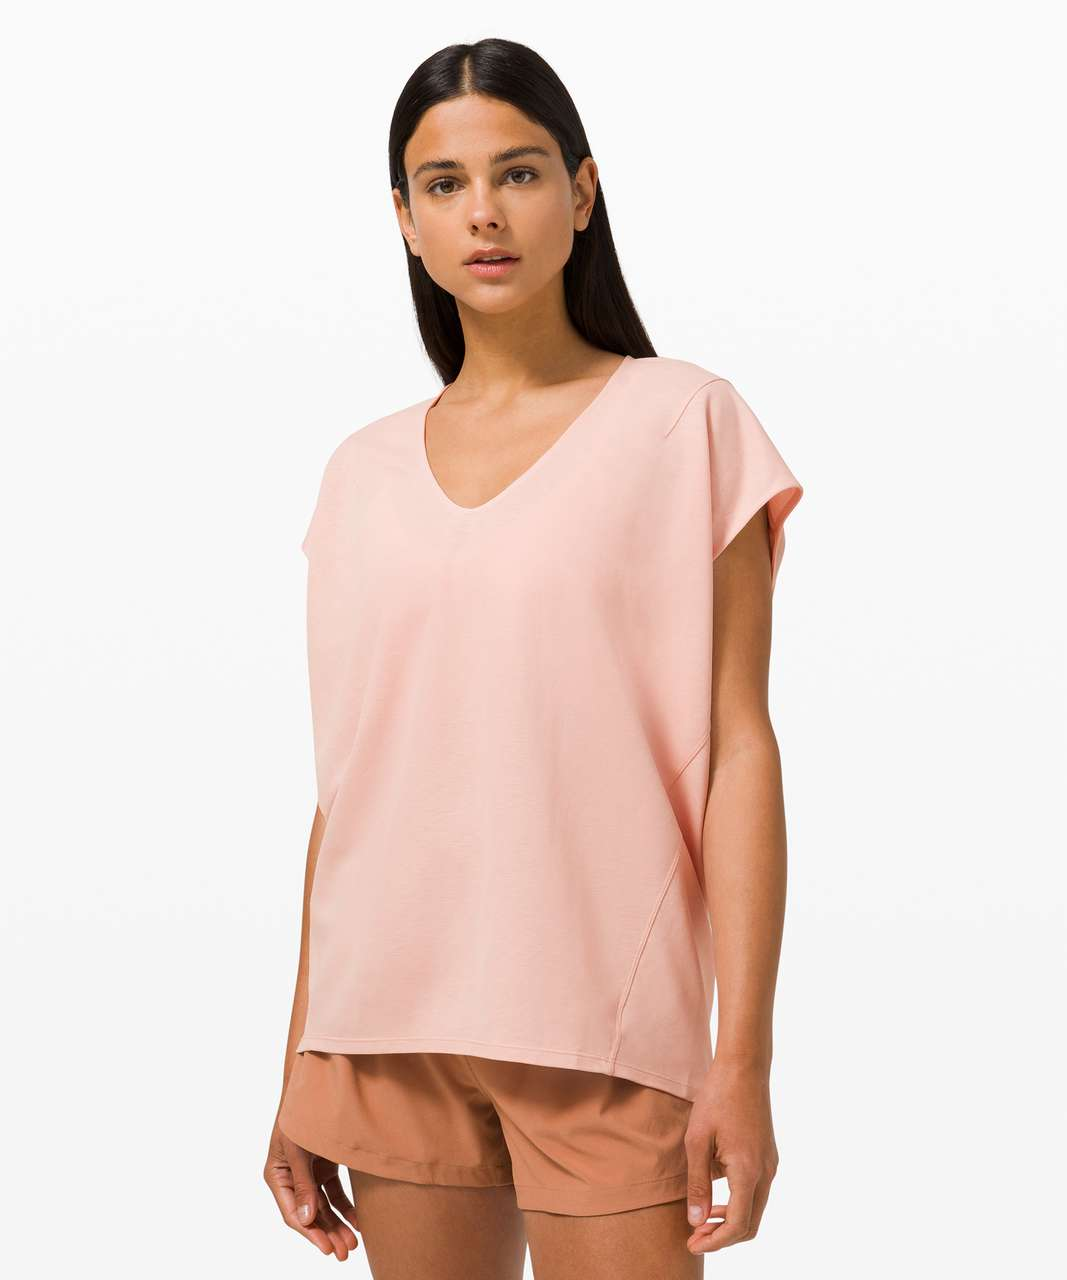 Lululemon Capped Short Sleeve Tee - Pink Mist